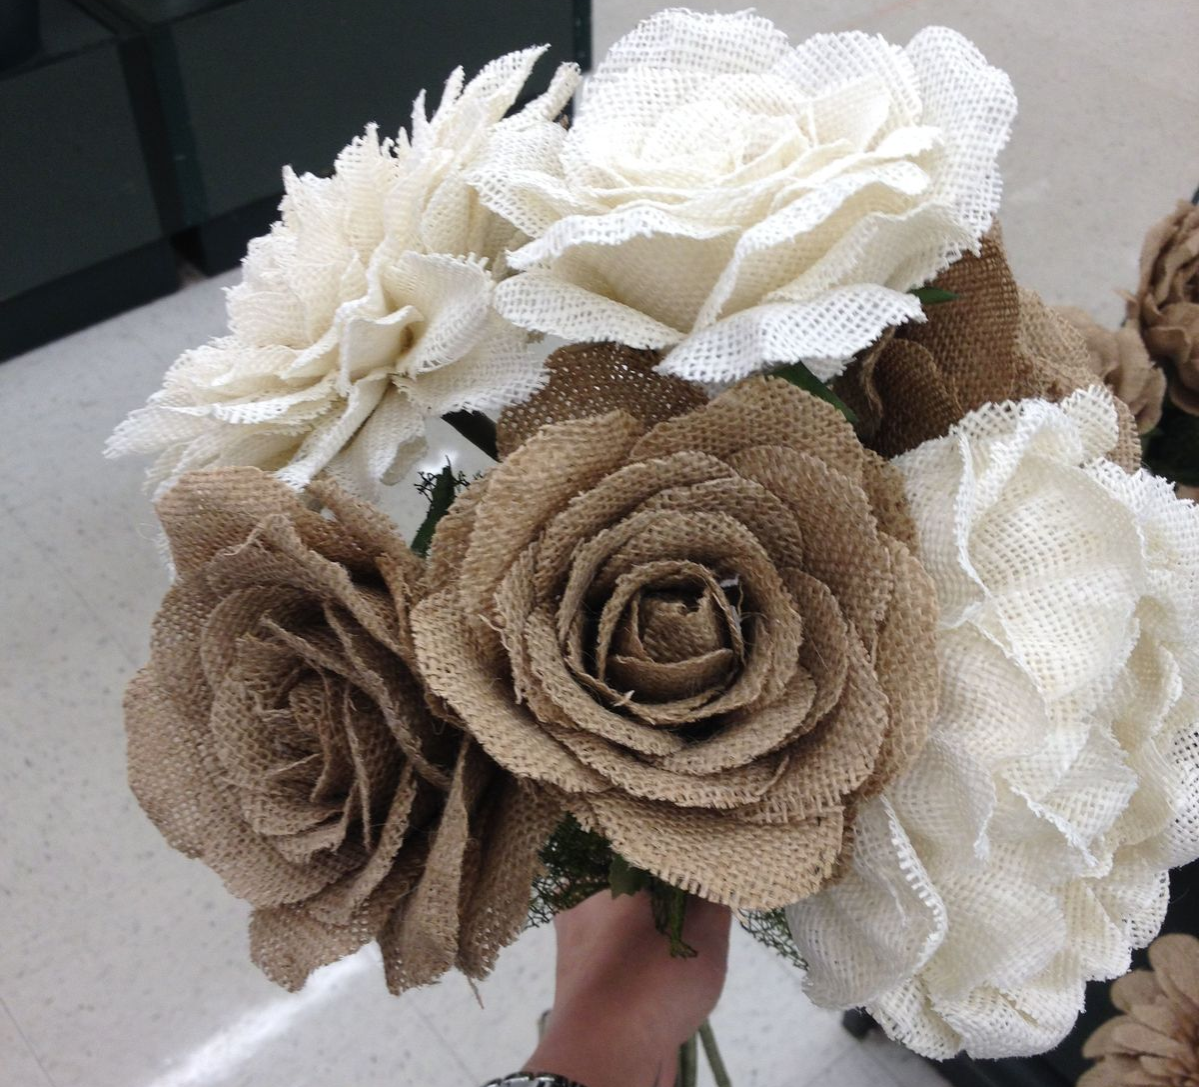 person holding burlap flowers bouquet in Hobby Lobby